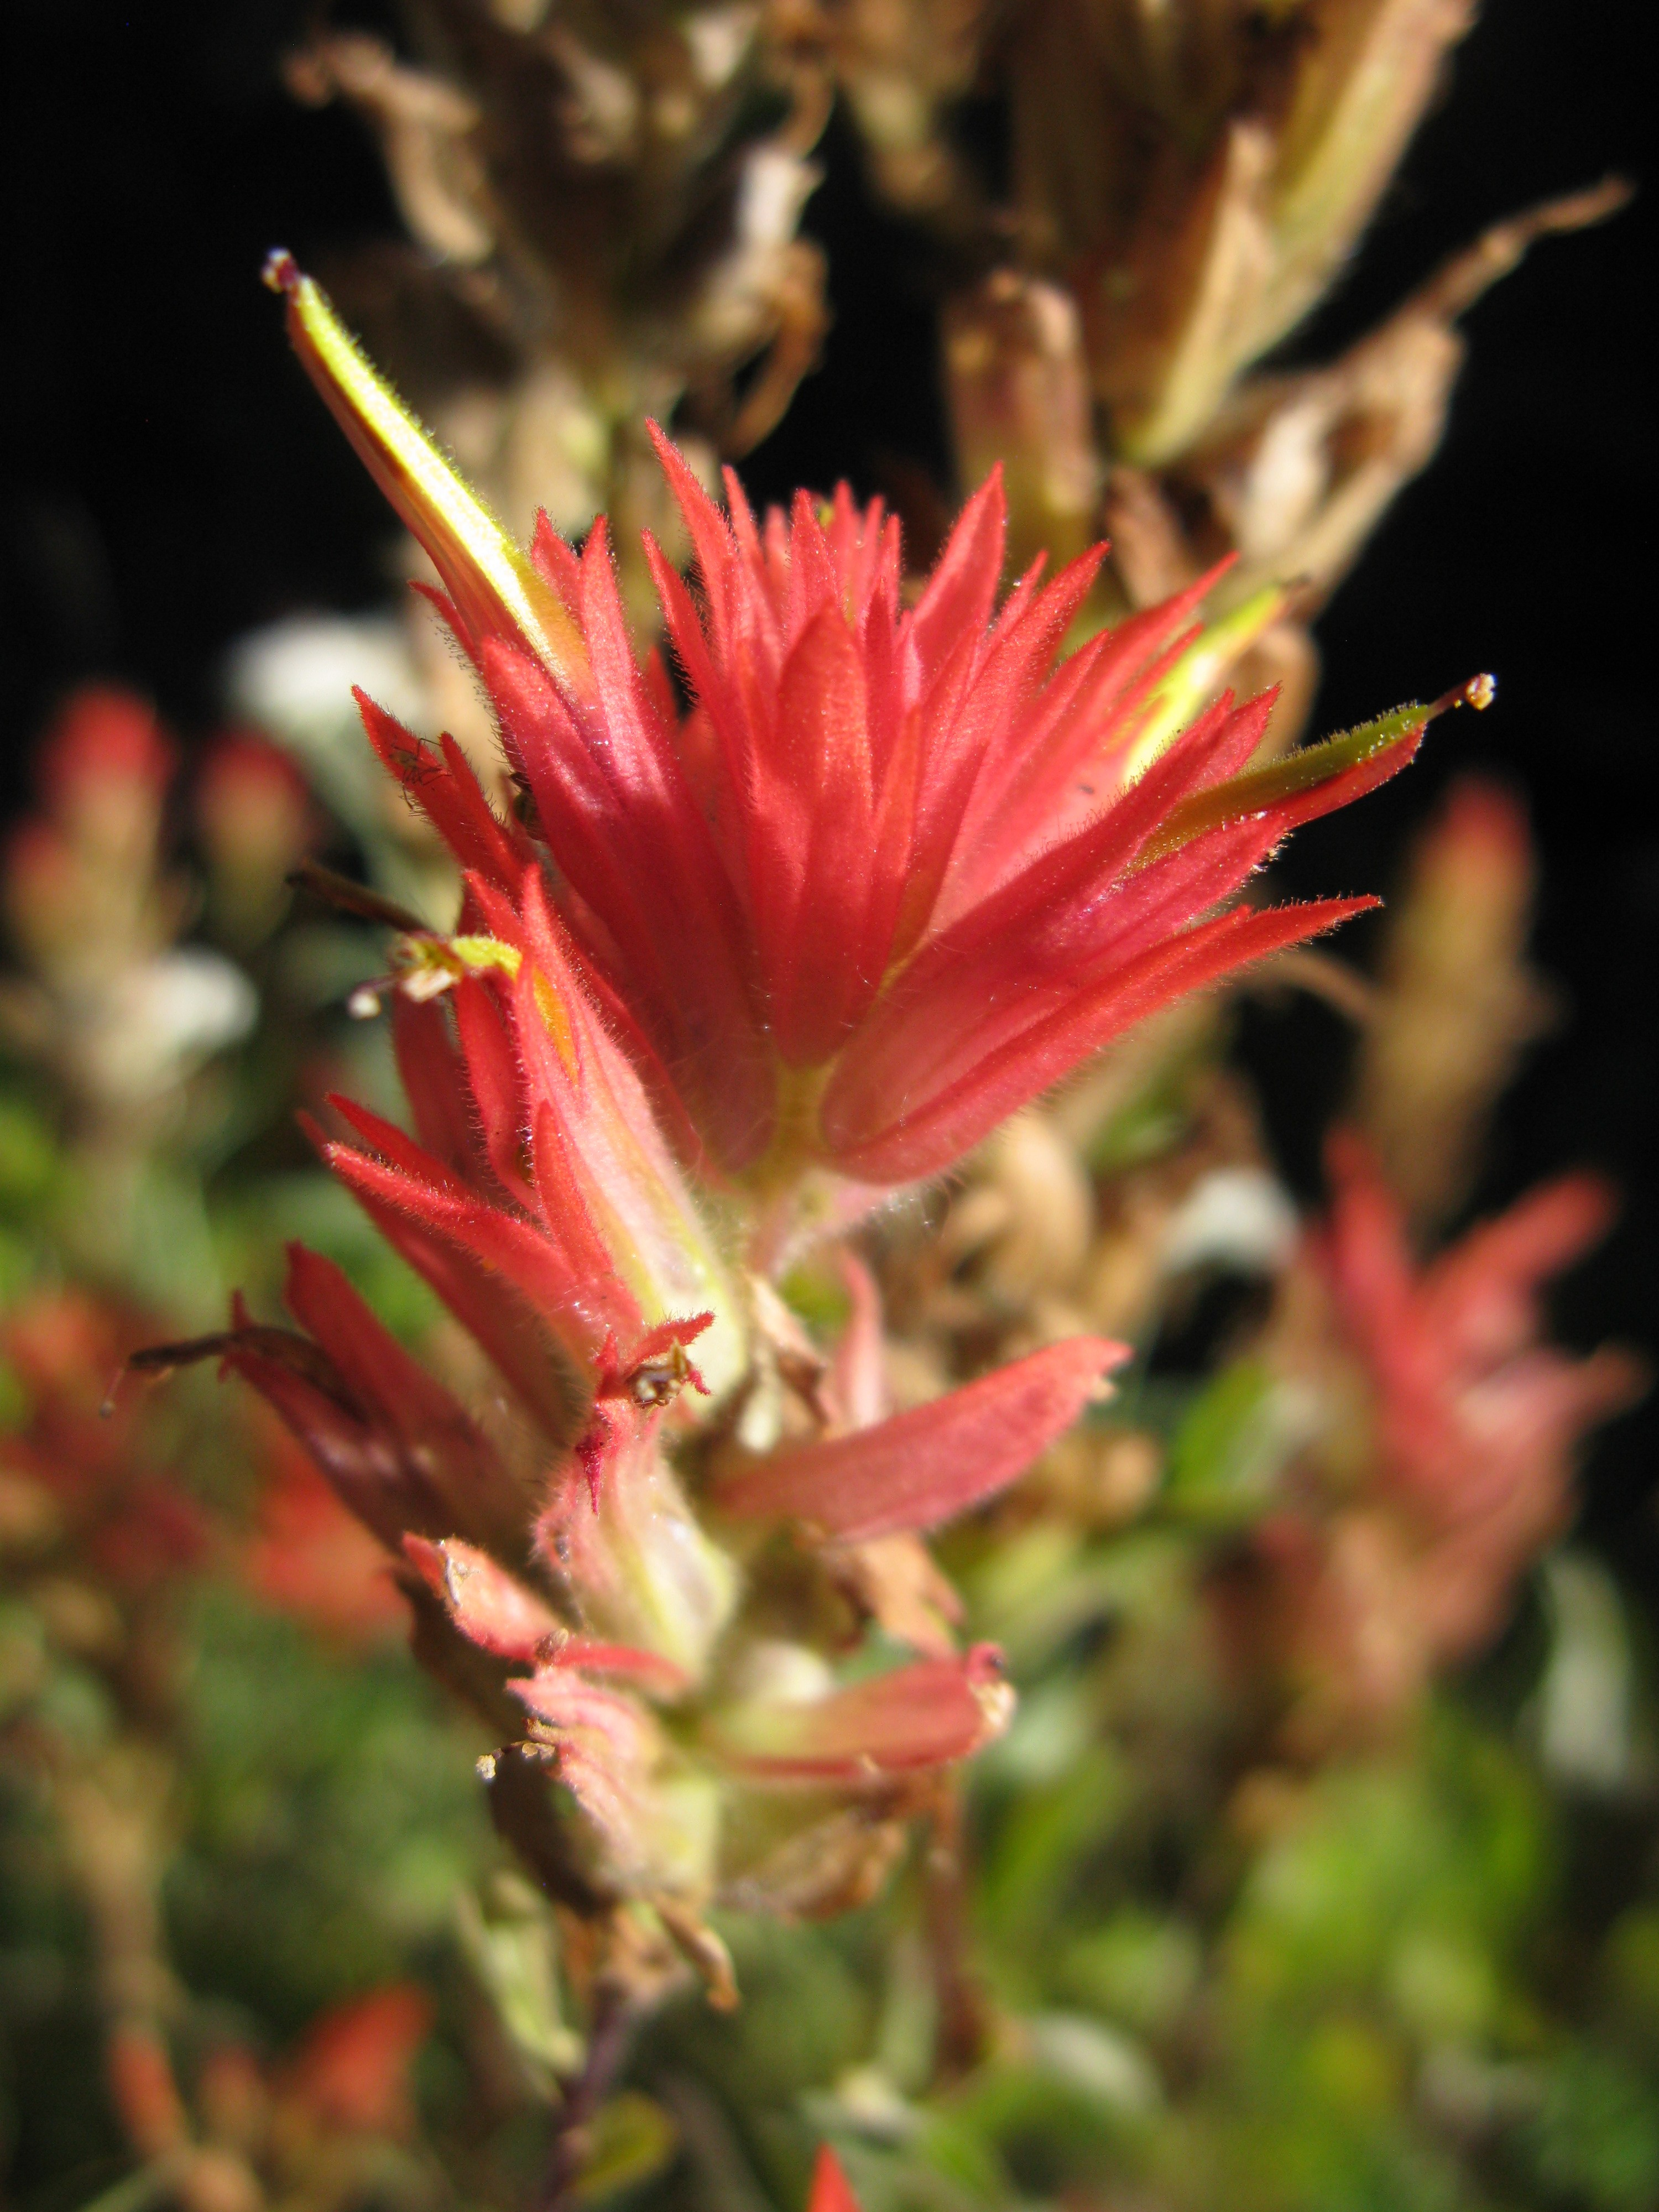 Indian paintbrush (Castilleja) are also a wildflower that grows abundantly by Mt. Rainier!